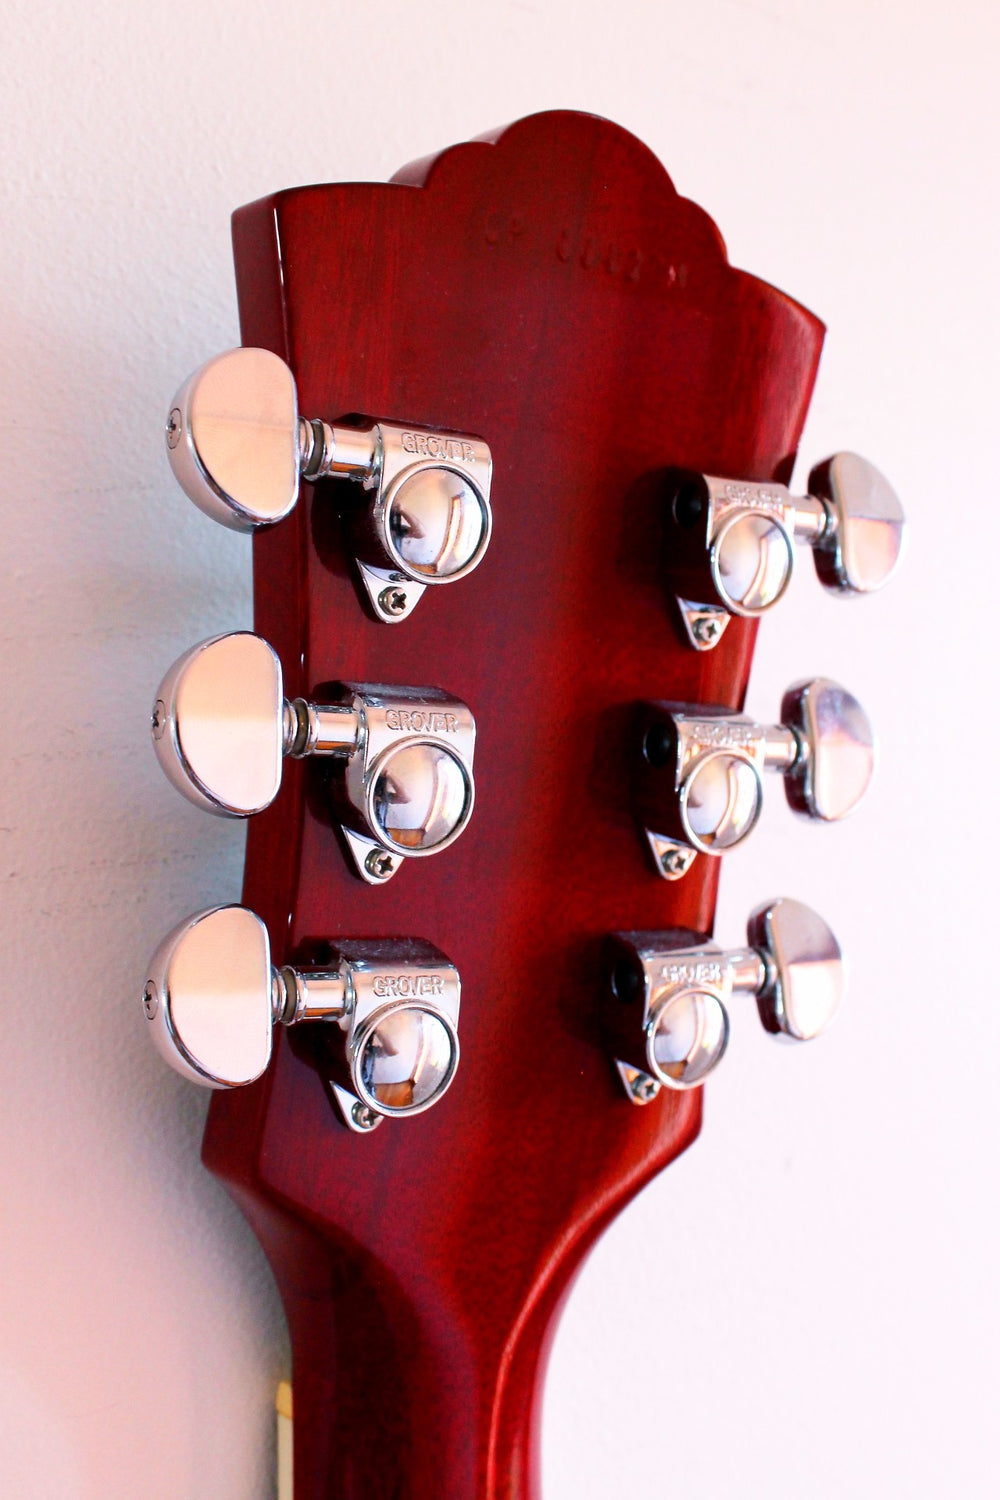 Used Guild Starfire III Cherry Red made in USA